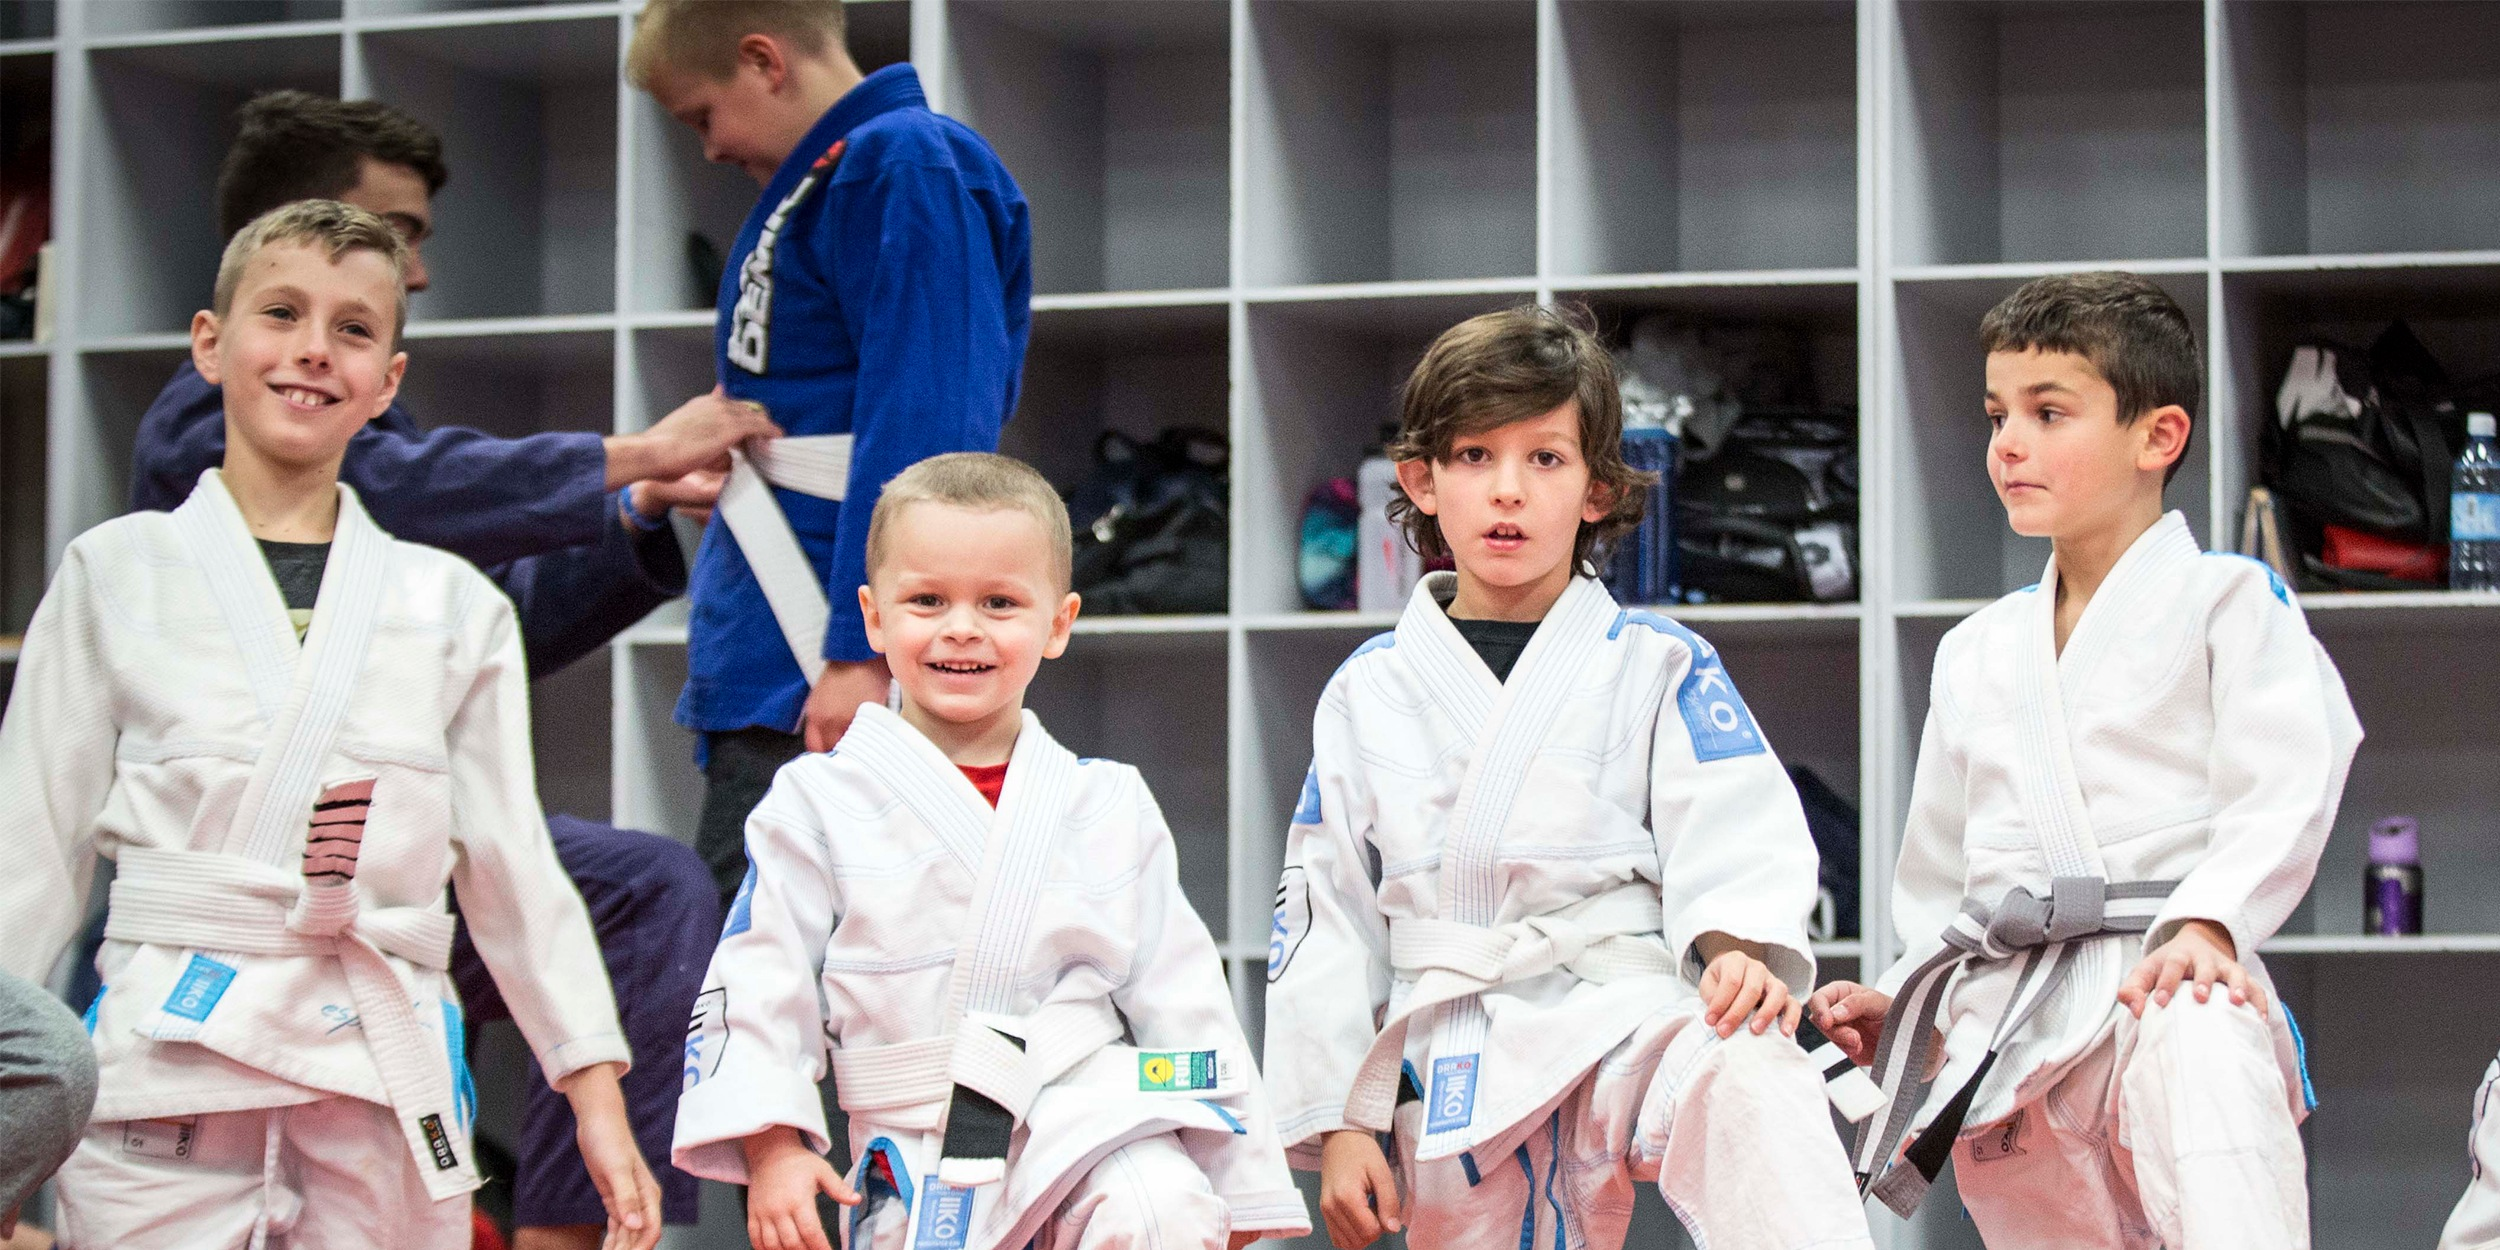 Grading Demonstration: See Your Child Get Their Next Stripe Promotion